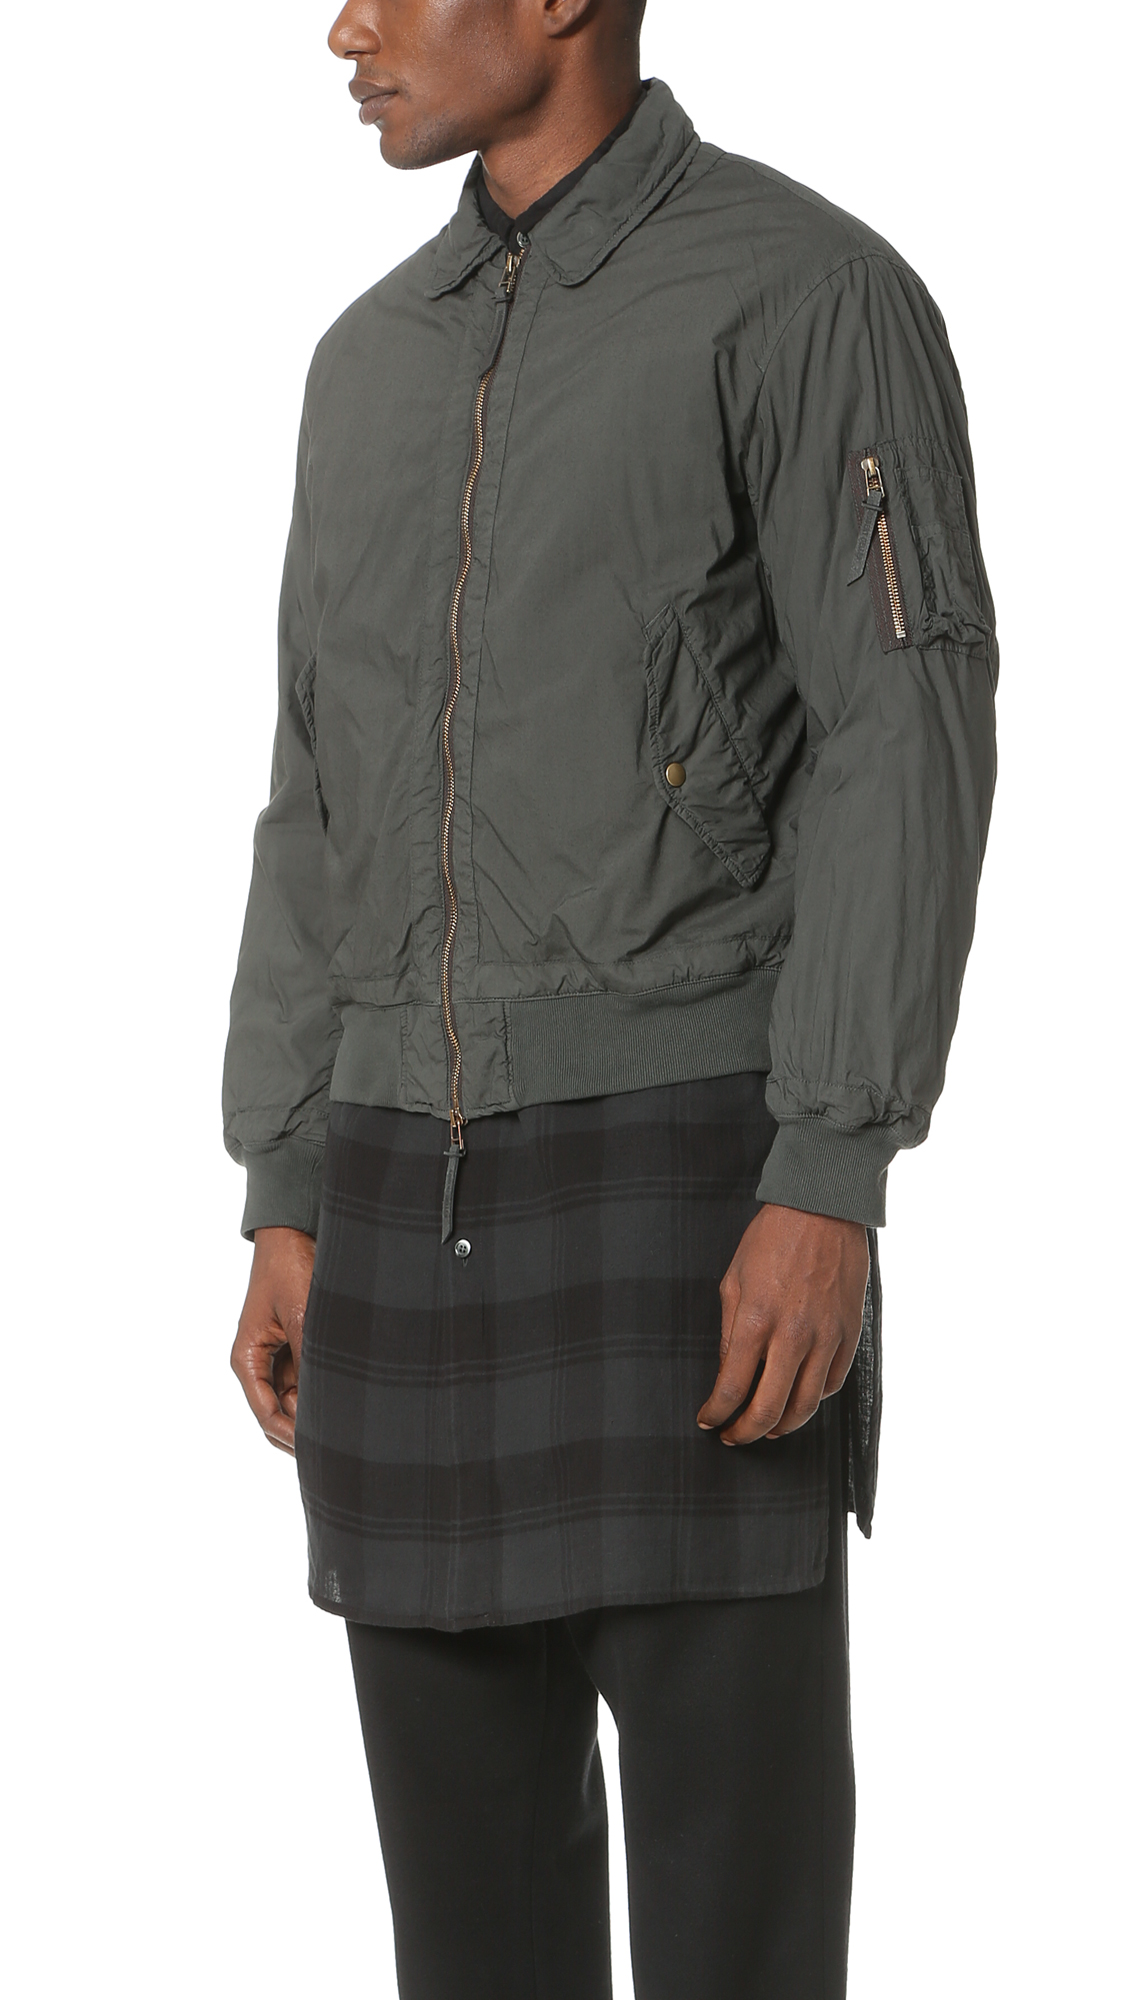 e257e1030 Robert Geller Garment Dyed Bomber Jacket | EAST DANE